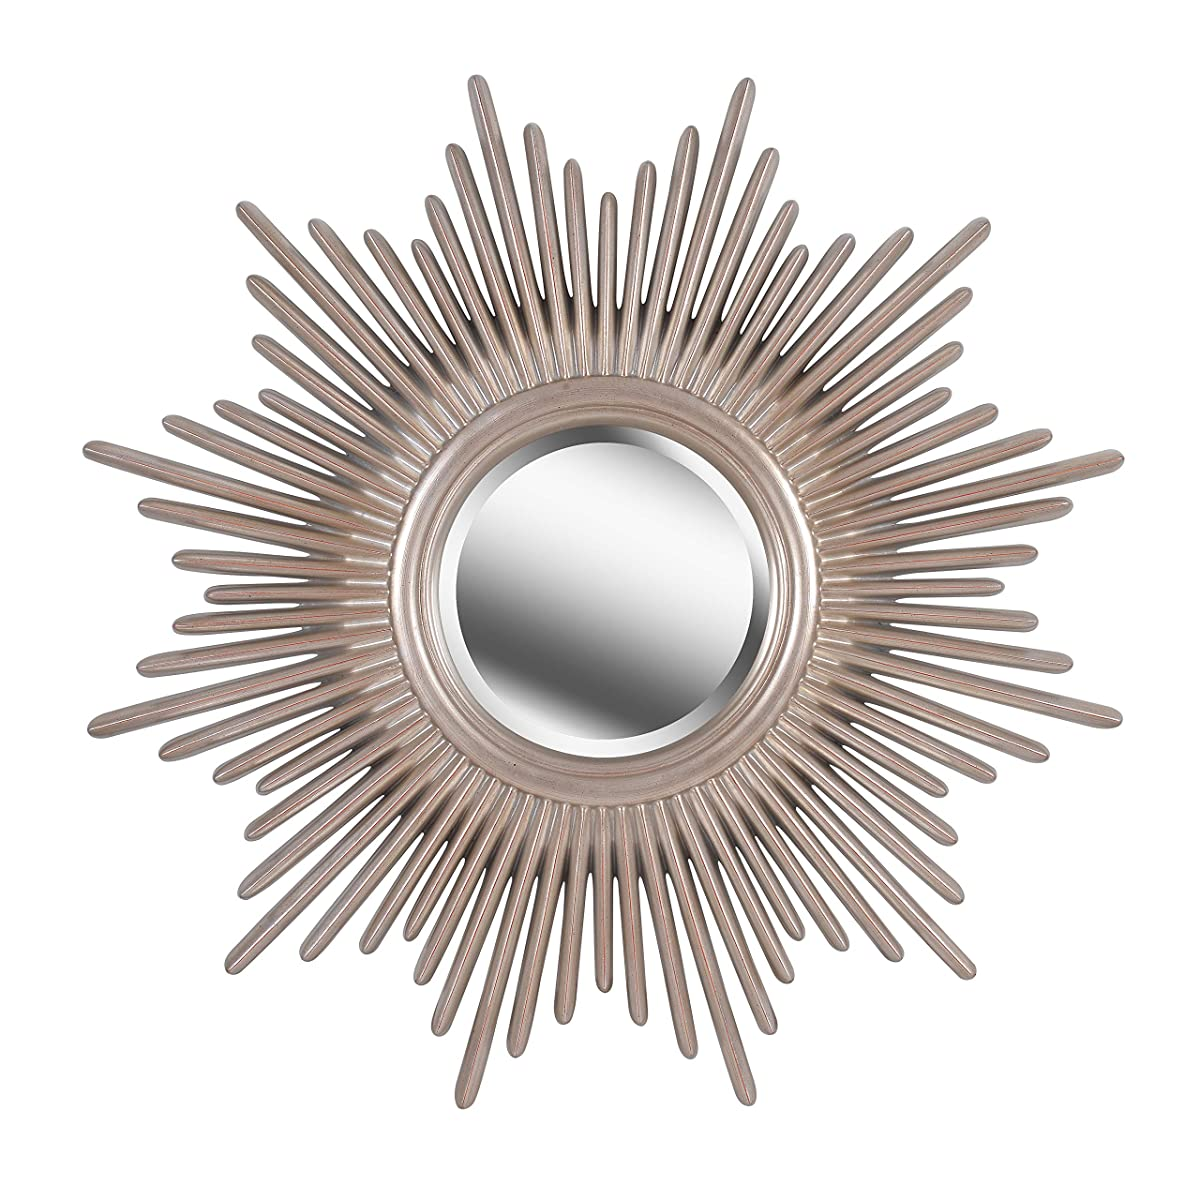 Kenroy Home Classic Sunburst Round Wall Mirror, 36 Inch Diameter, Warm Antique Silver Finish, Easy Hang D-Rings Included